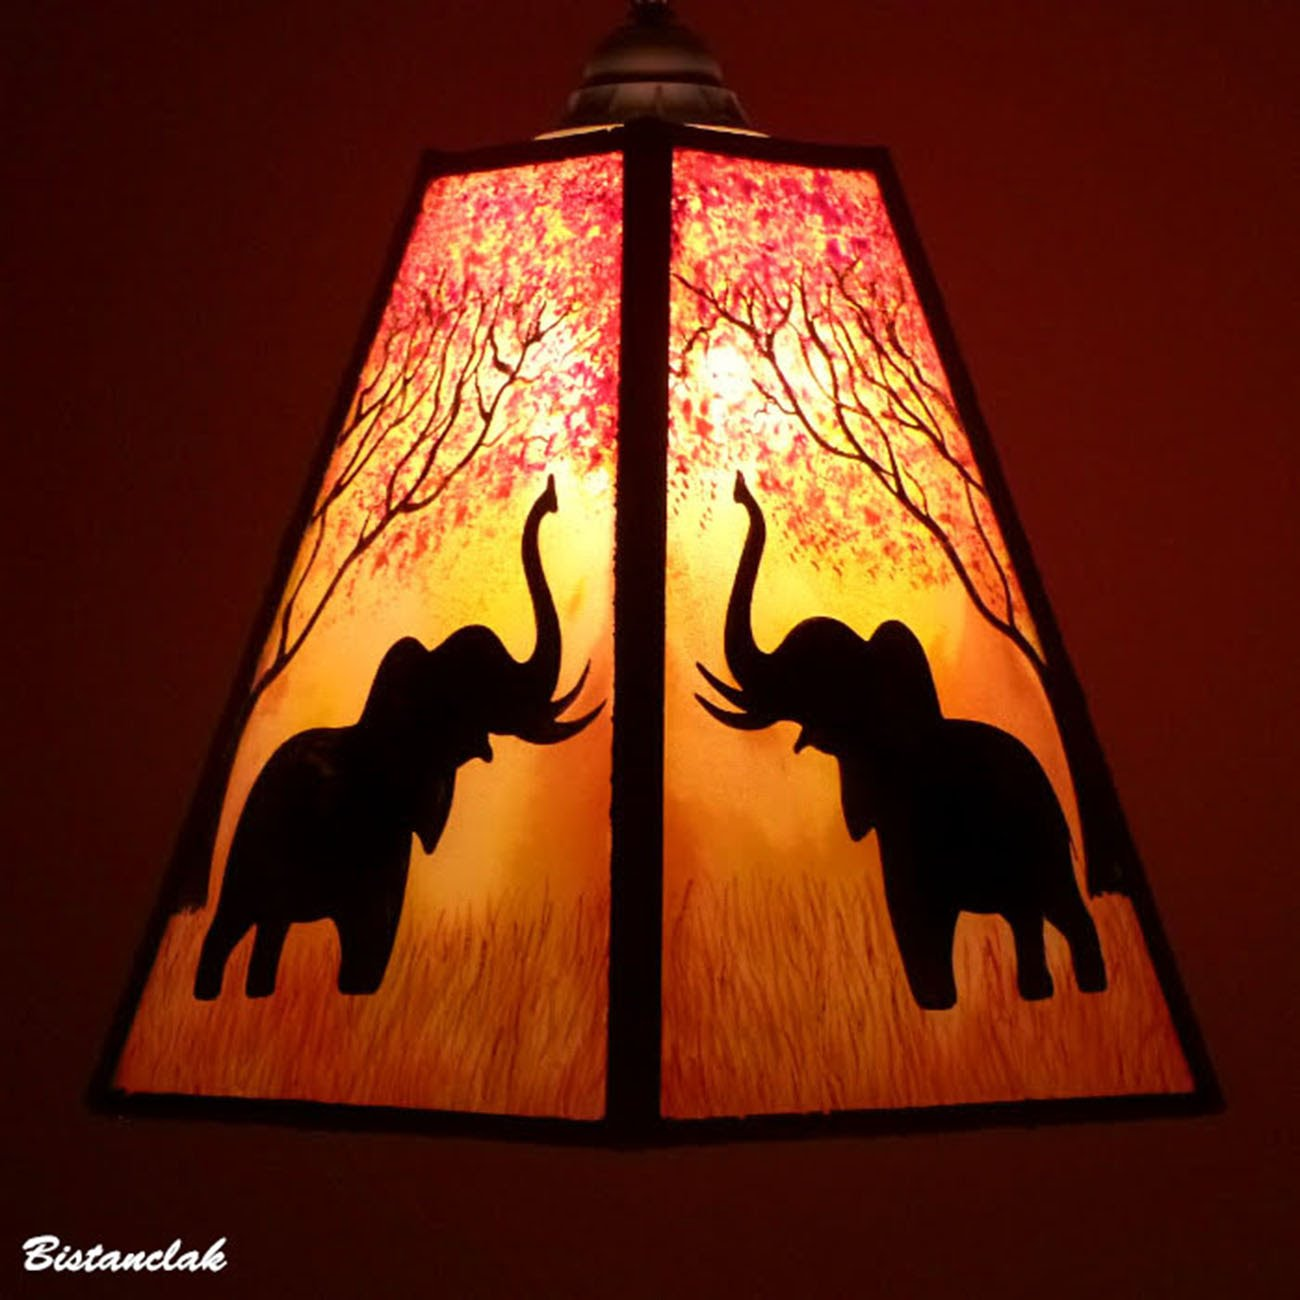 Lustre suspension forme trapeze de couleur jaune orange rouge motif arbre et elephant 6